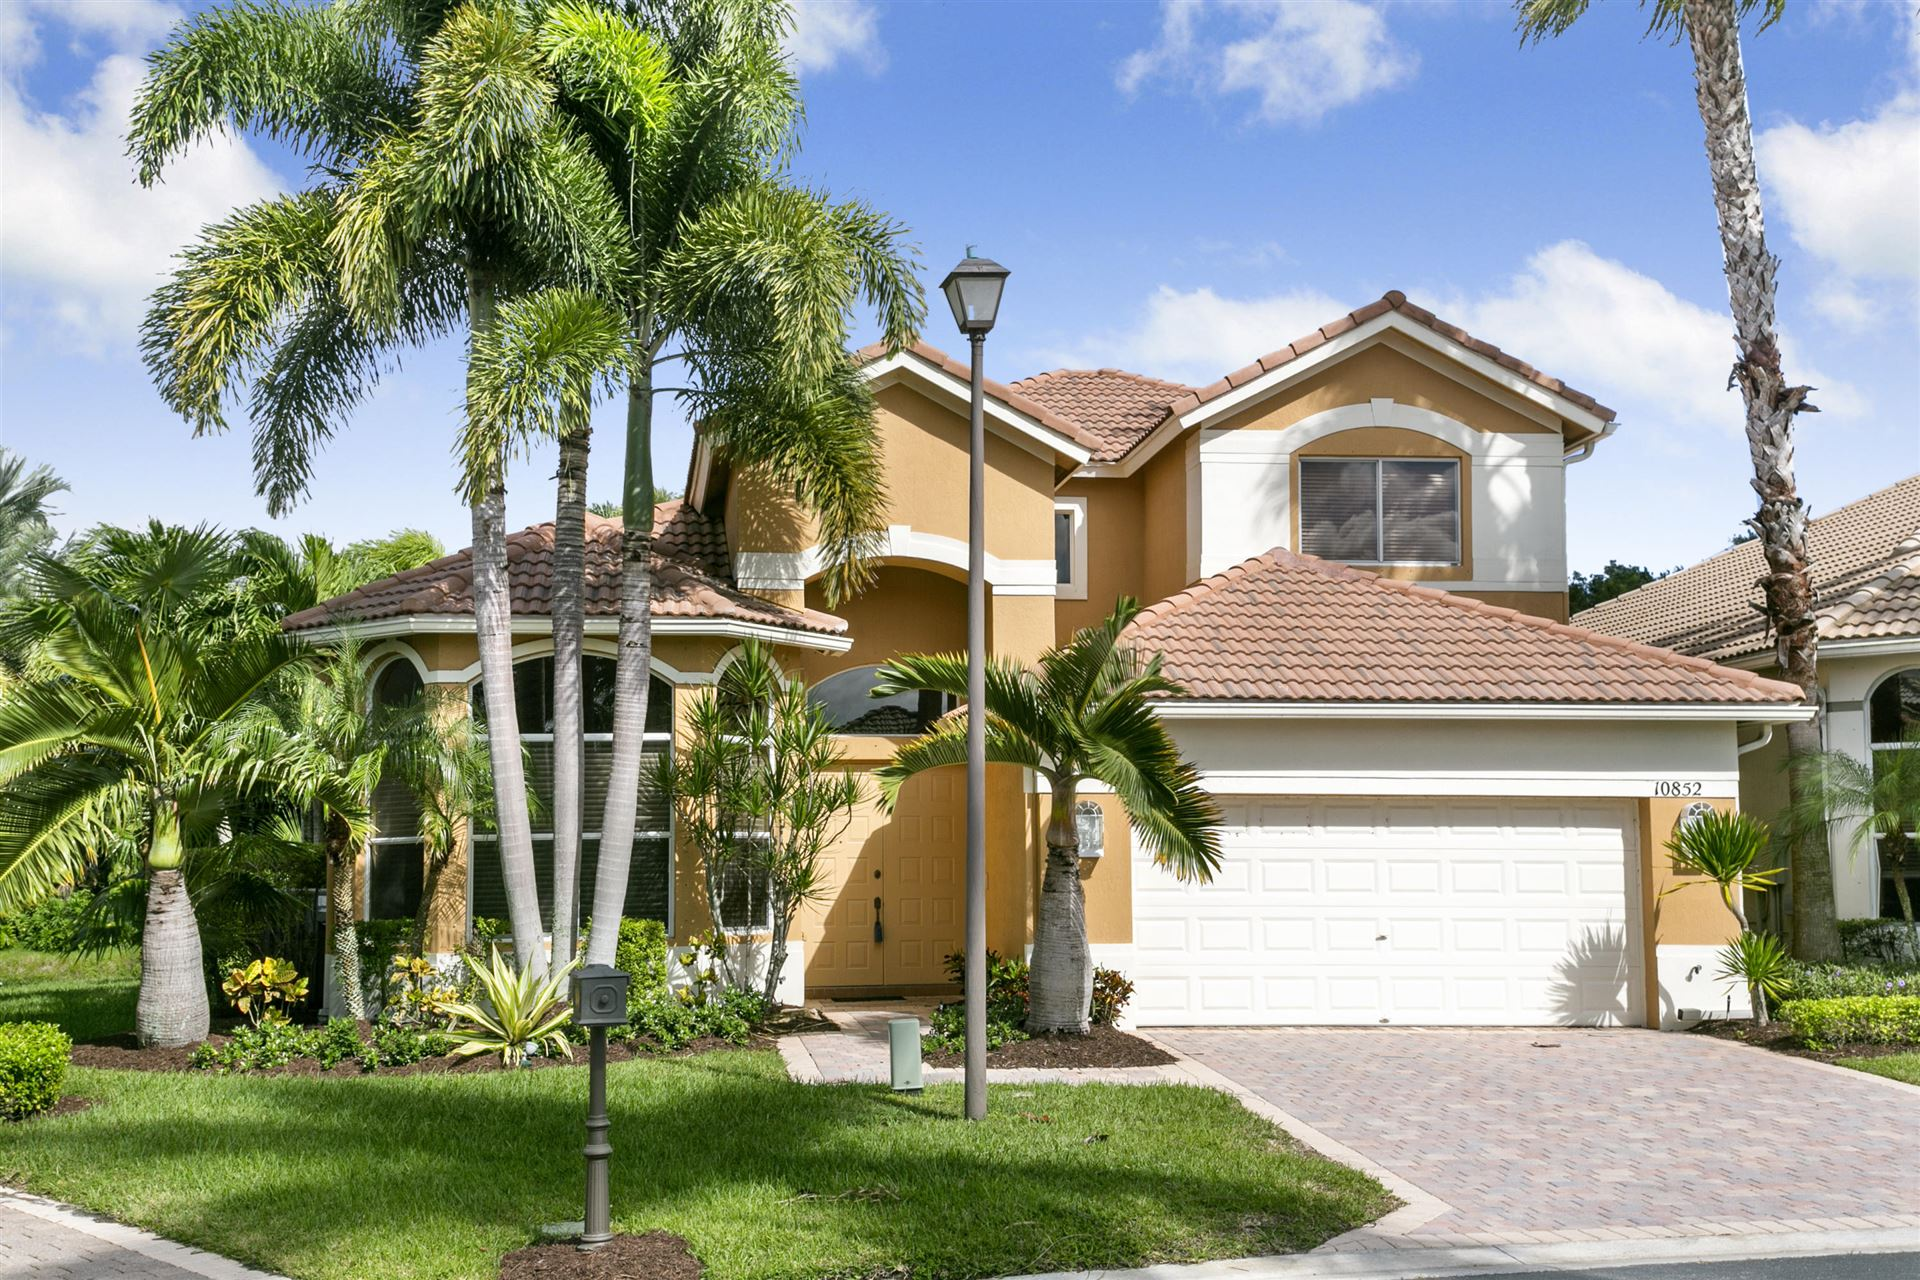 10852 Grande Boulevard, West Palm Beach, FL 33412 - MLS#: RX-10716038